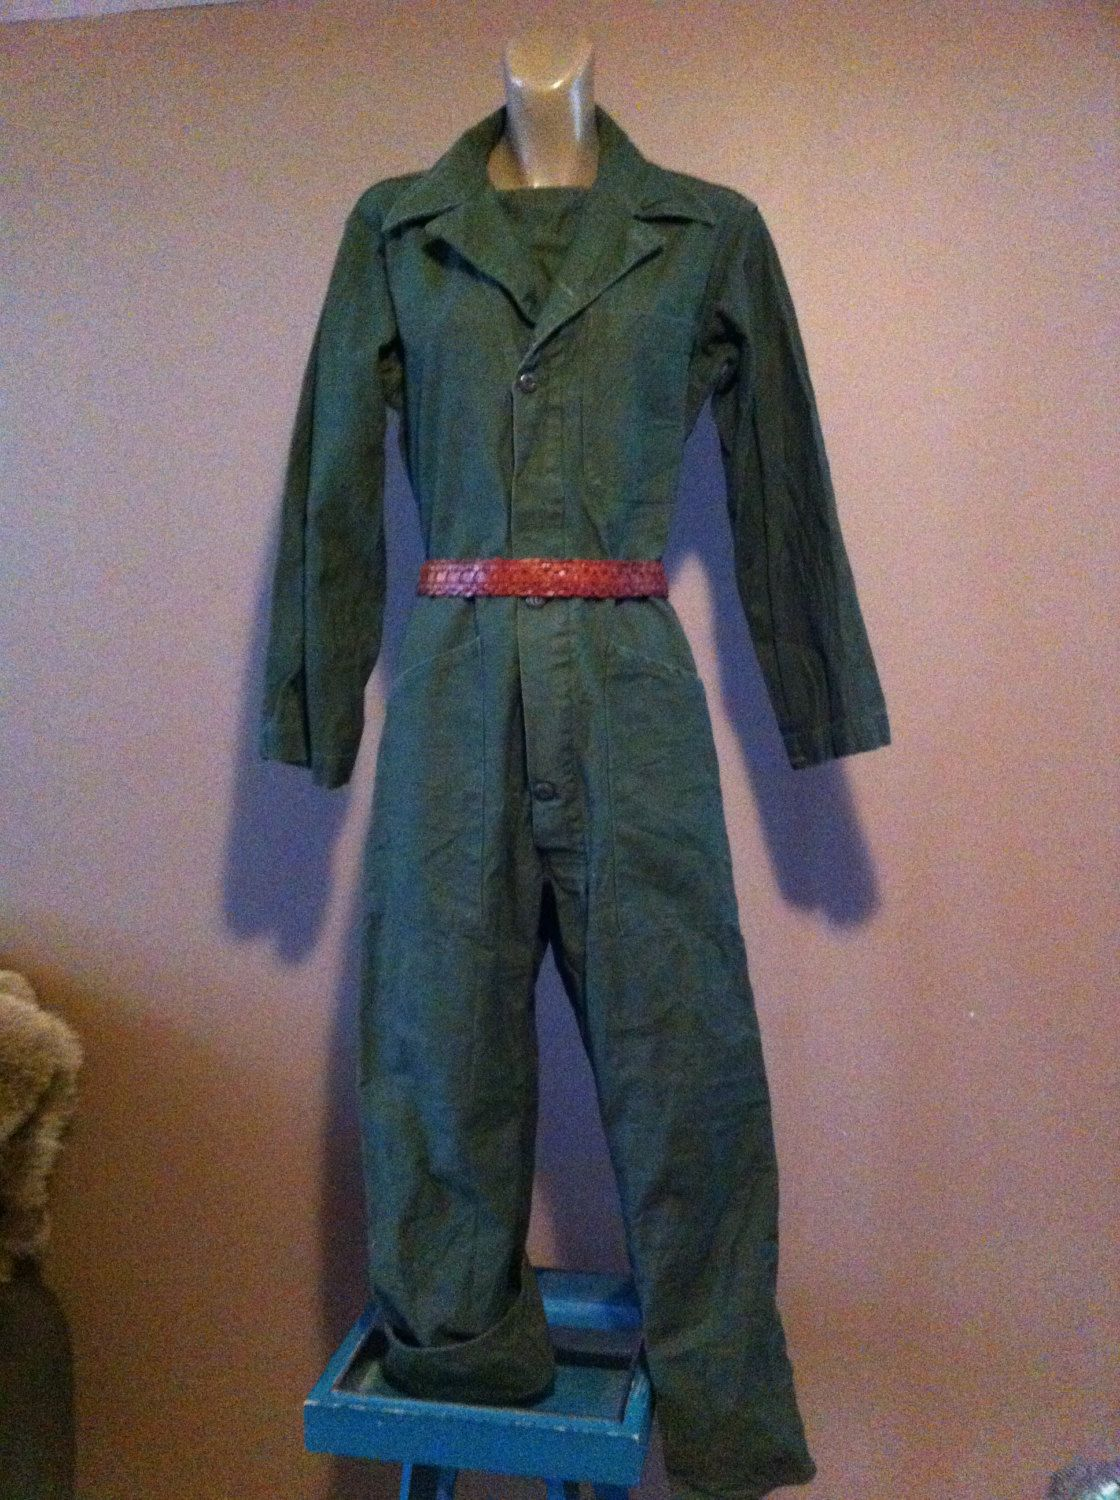 e79405519329 Vintage Military Jumpsuit overalls mechanic flight suit army green 70 s by  truepagevintage on Etsy